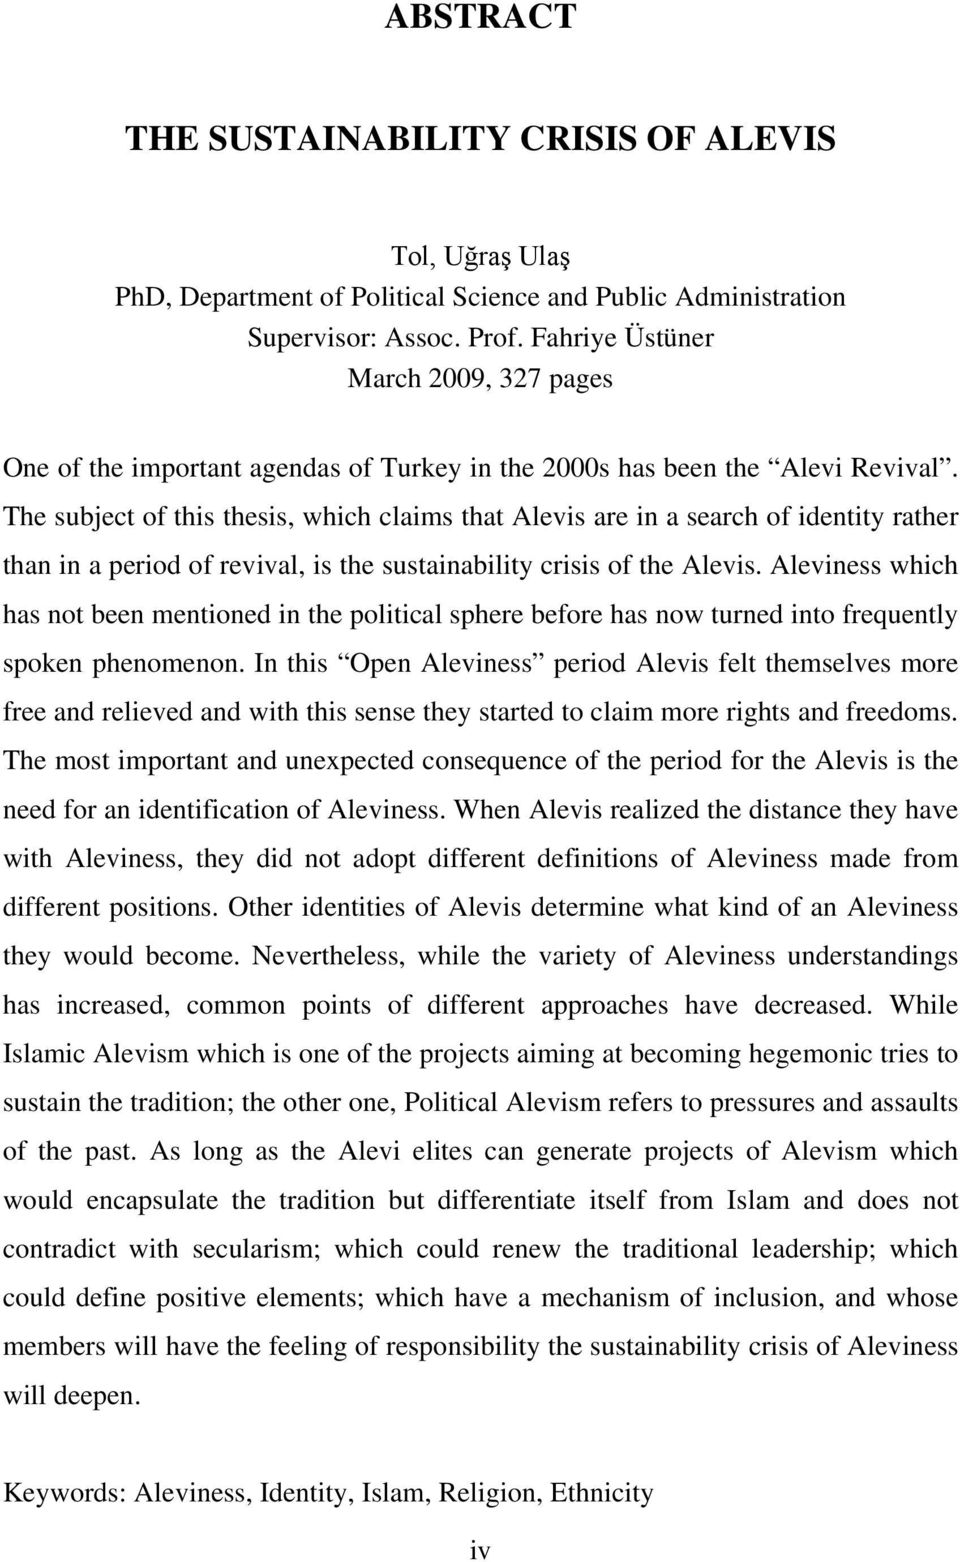 The subject of this thesis, which claims that Alevis are in a search of identity rather than in a period of revival, is the sustainability crisis of the Alevis.